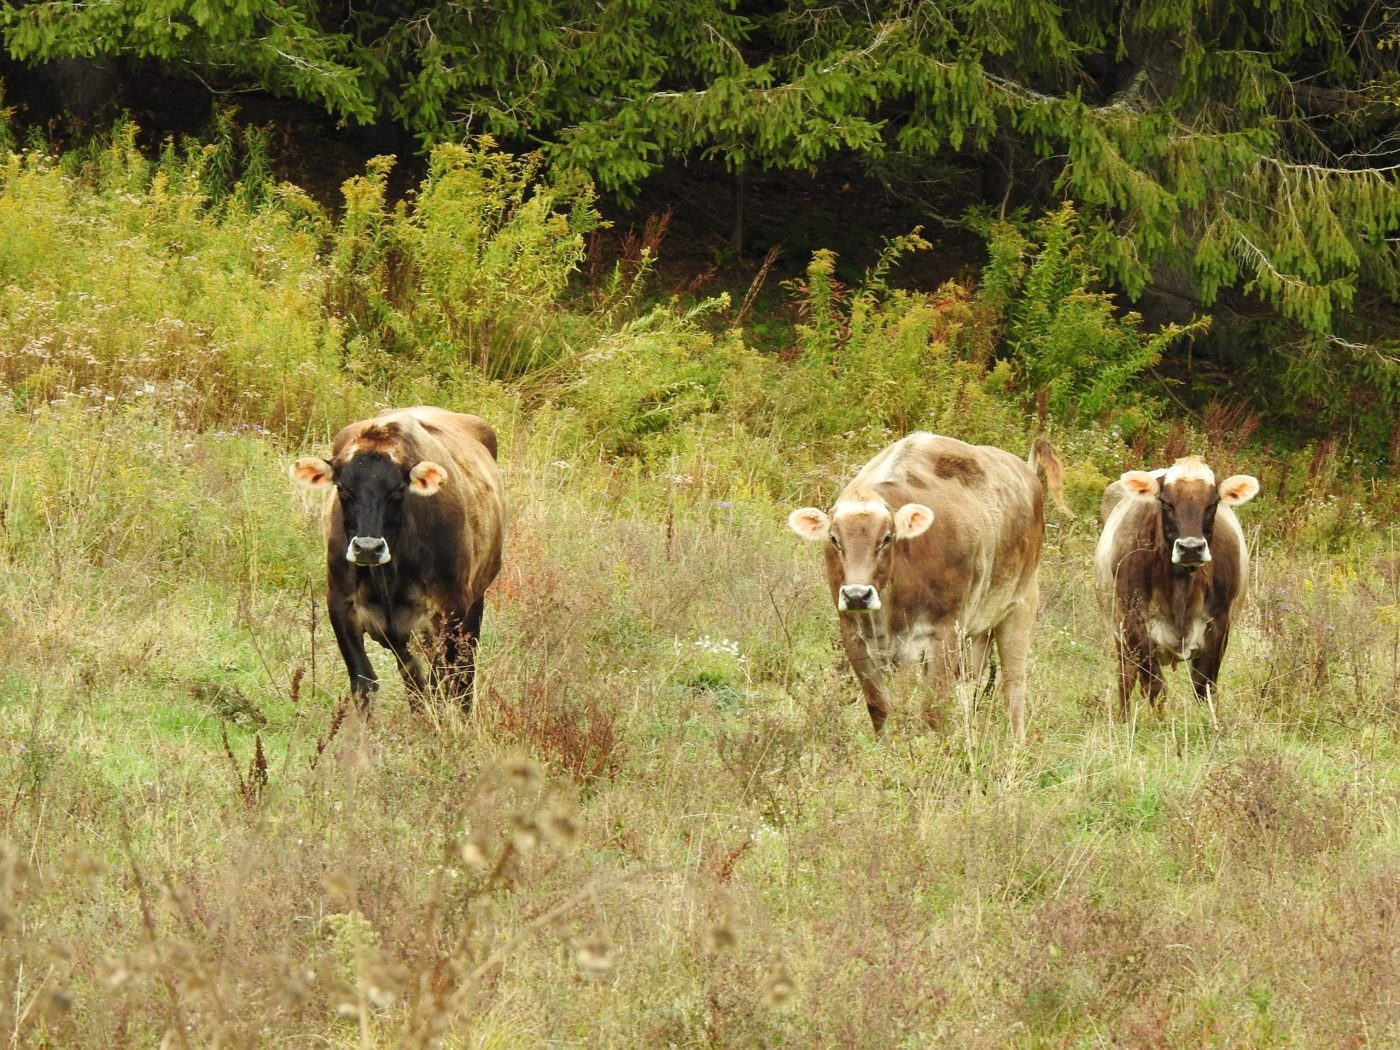 Hobart rescue, Honey, Camina, and Lux cows in a field